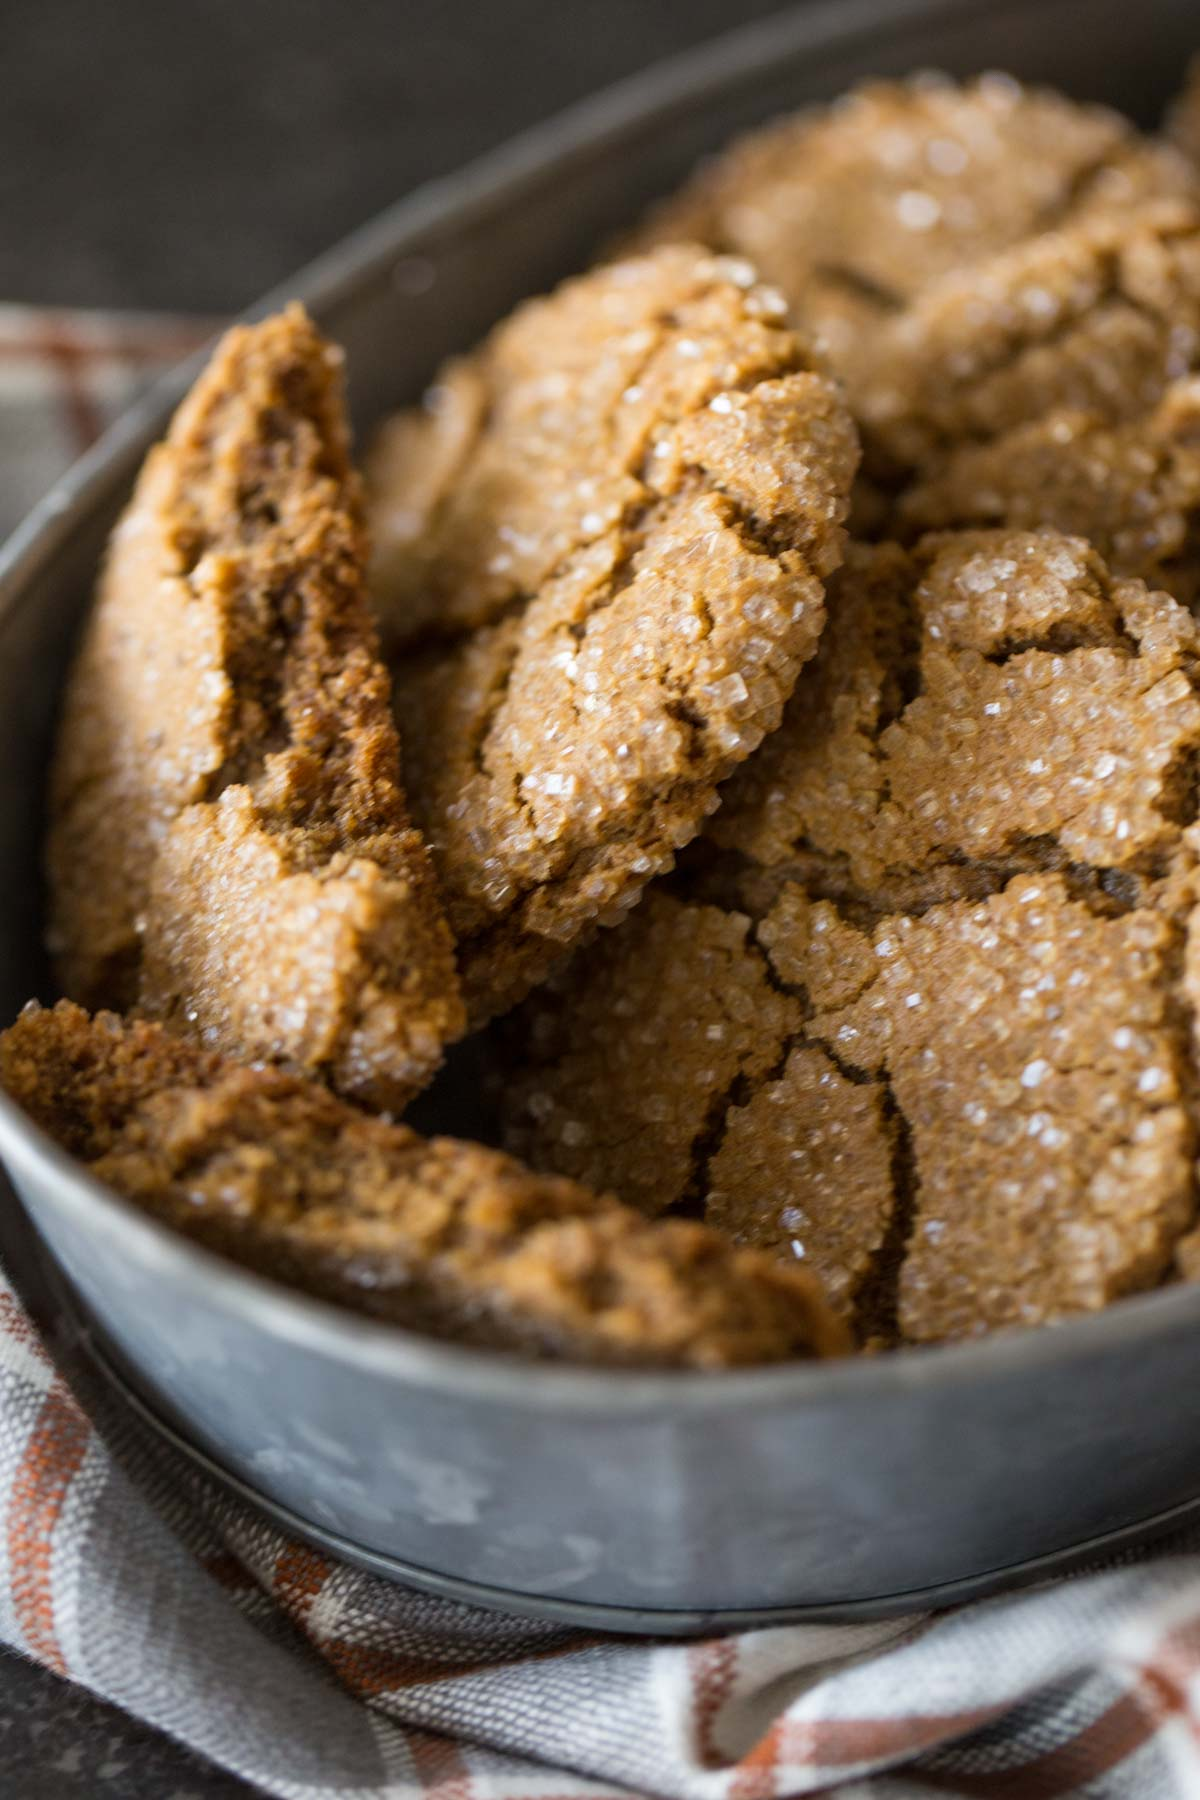 Peanut Butter Molasses Cookies in a galvanized bowl, with one of the cookies broken in half.